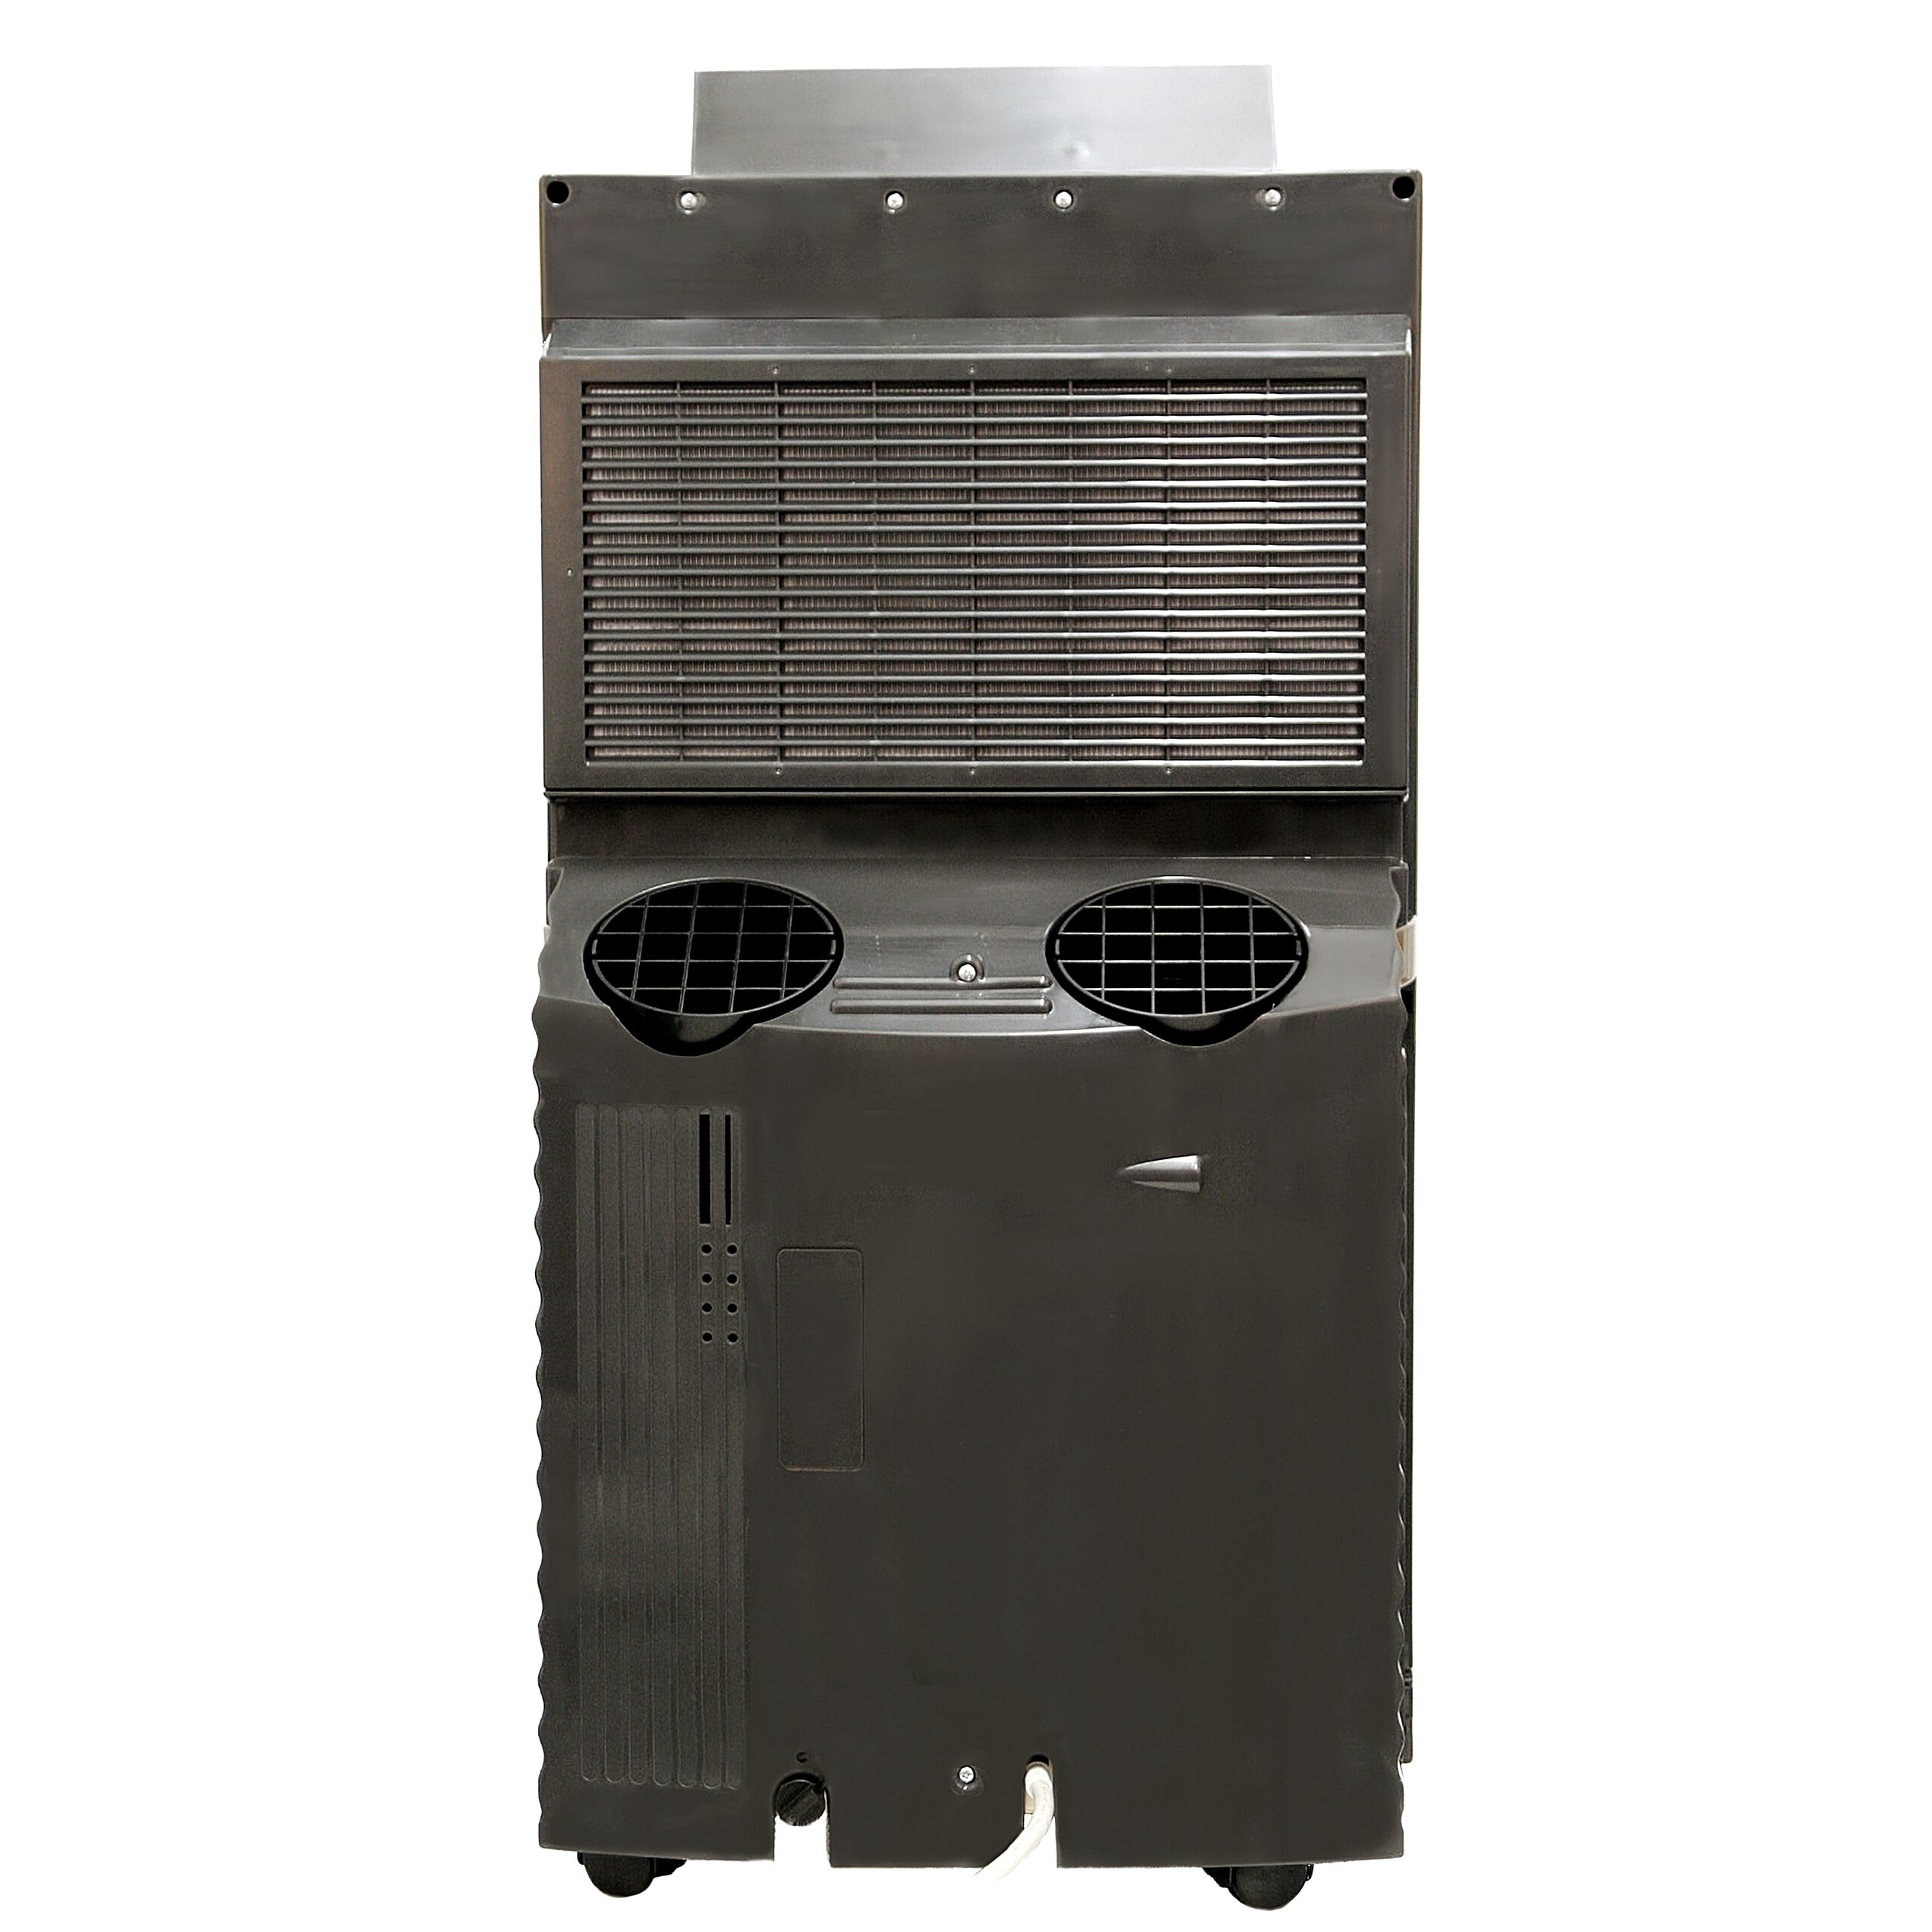 #39352F 14 000 BTU Dual Hose Portable Air Conditioner With Remote  Recommended 11727 Dual Air Conditioner And Heater pics with 2560x2560 px on helpvideos.info - Air Conditioners, Air Coolers and more